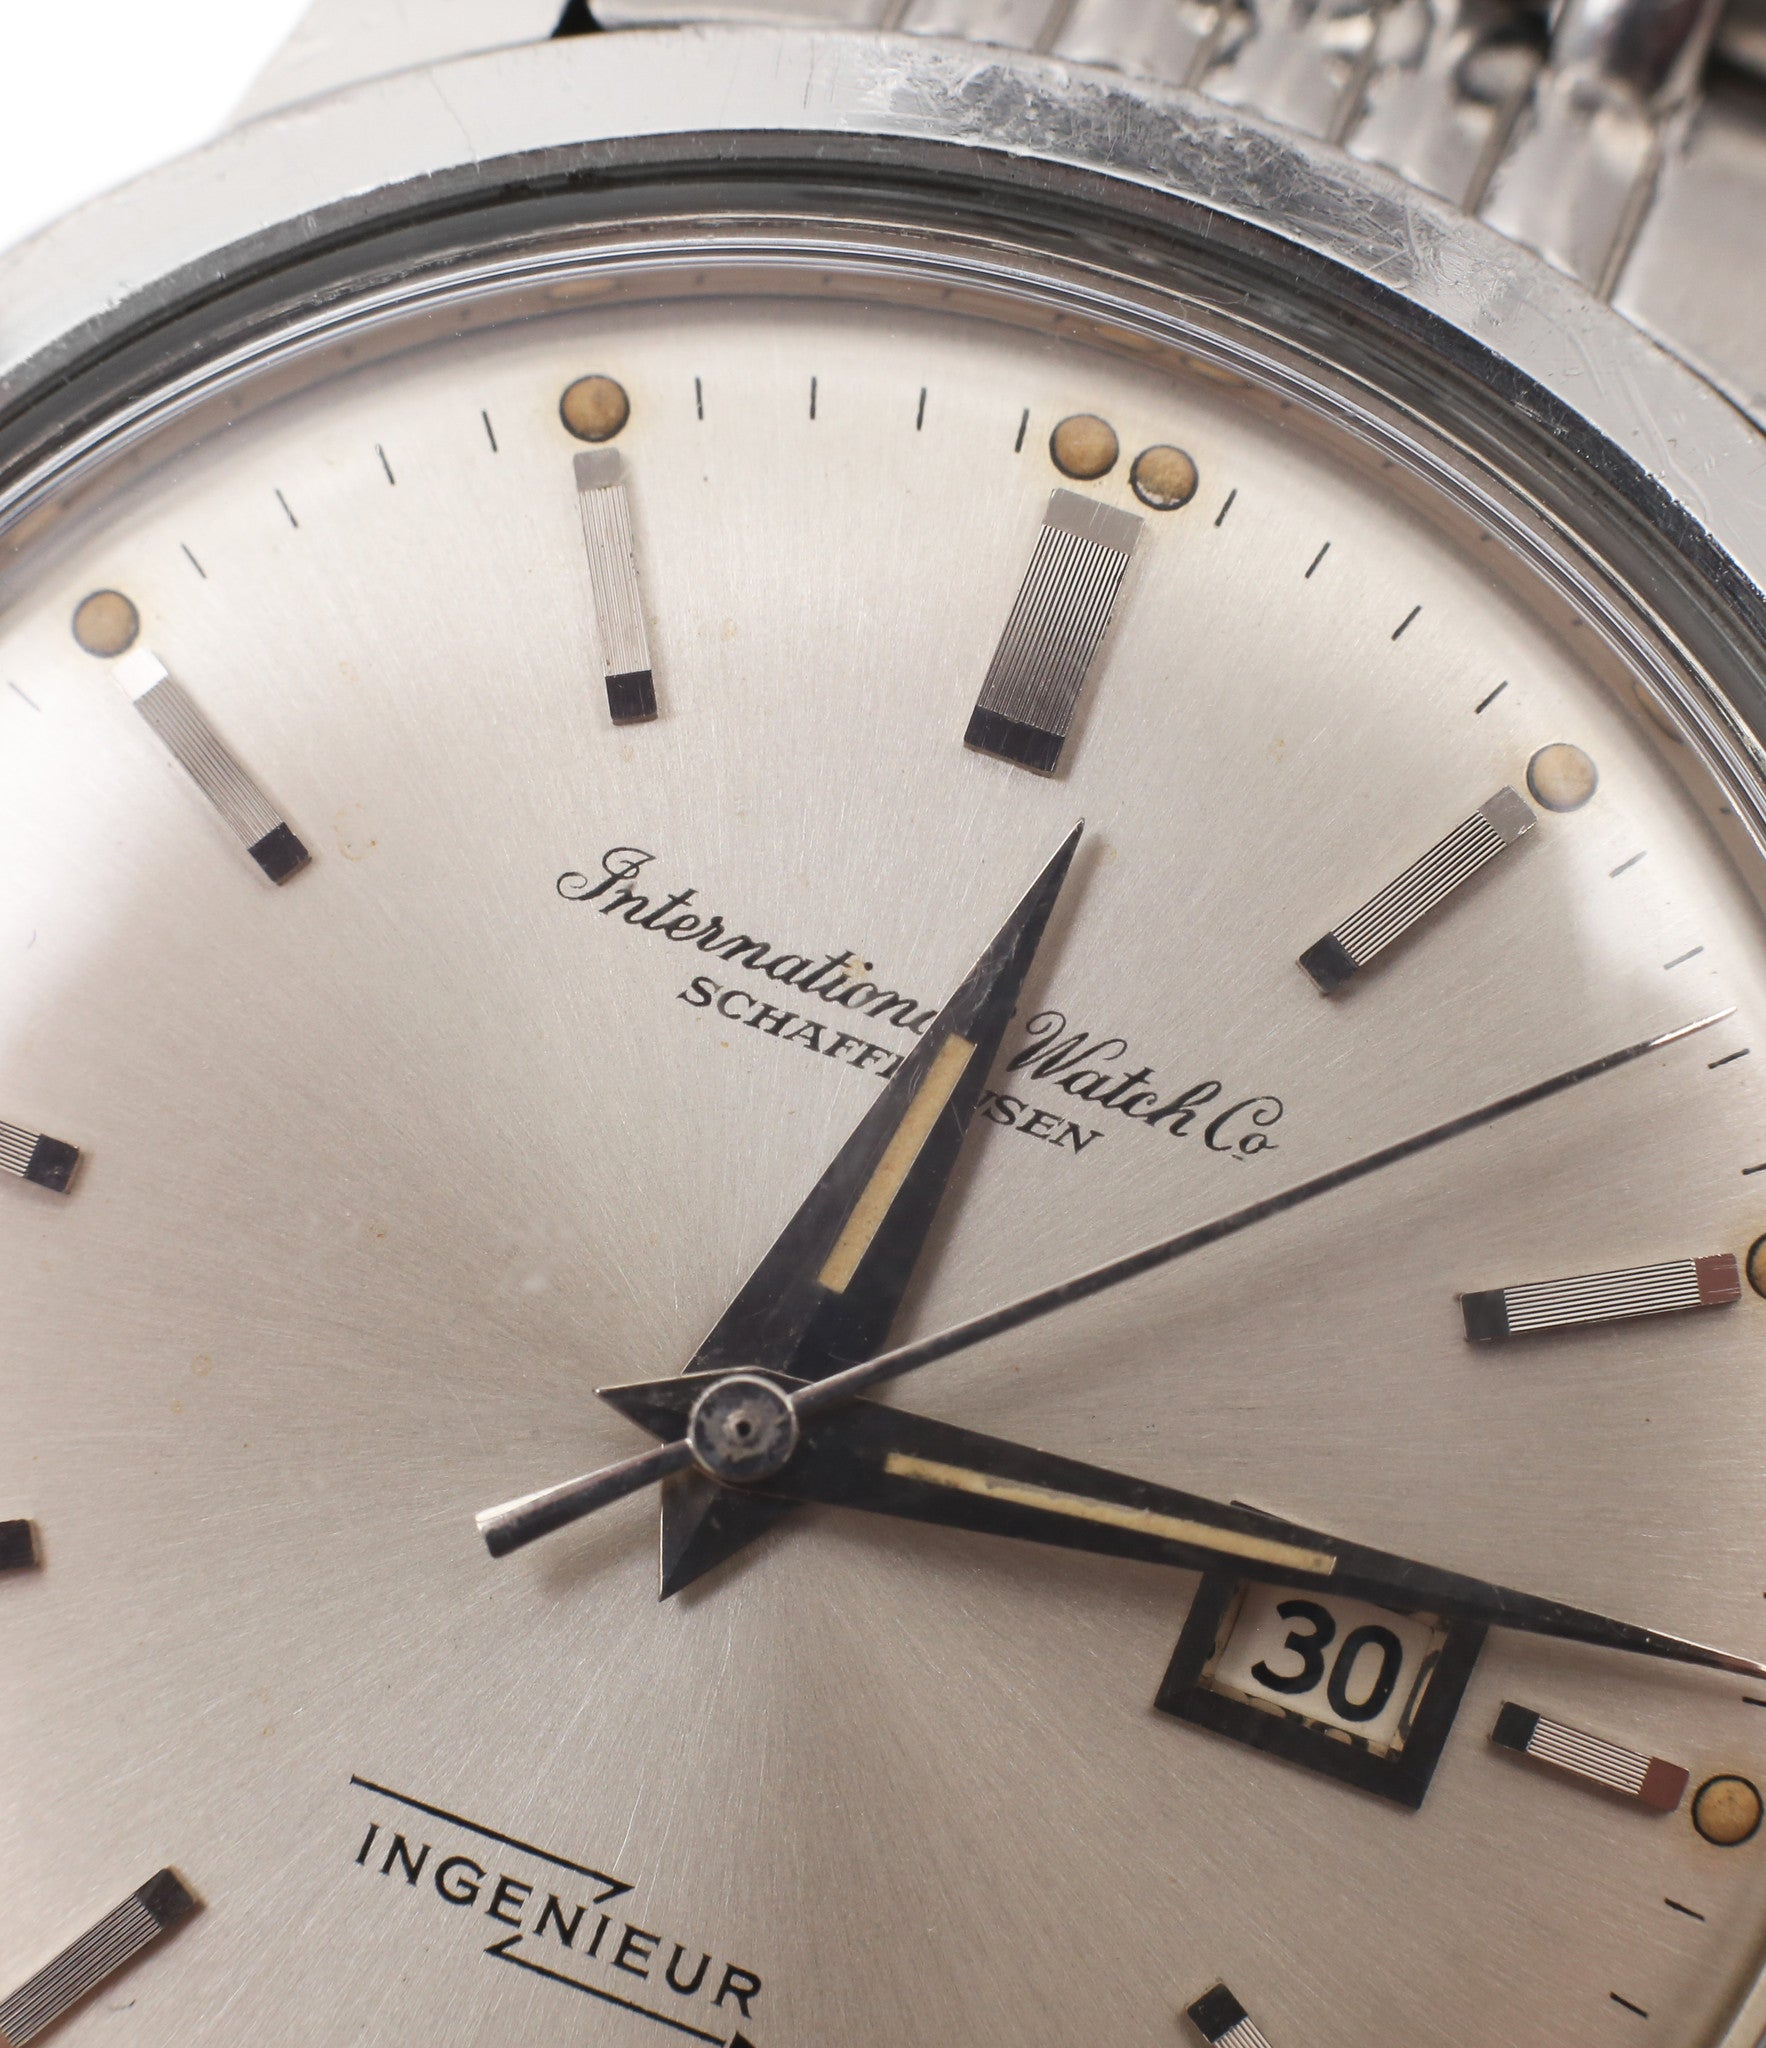 IWC Schaffhausen vintage Ingenieur watch 666AD steel watch unrestored dial for sale at A Collected Man